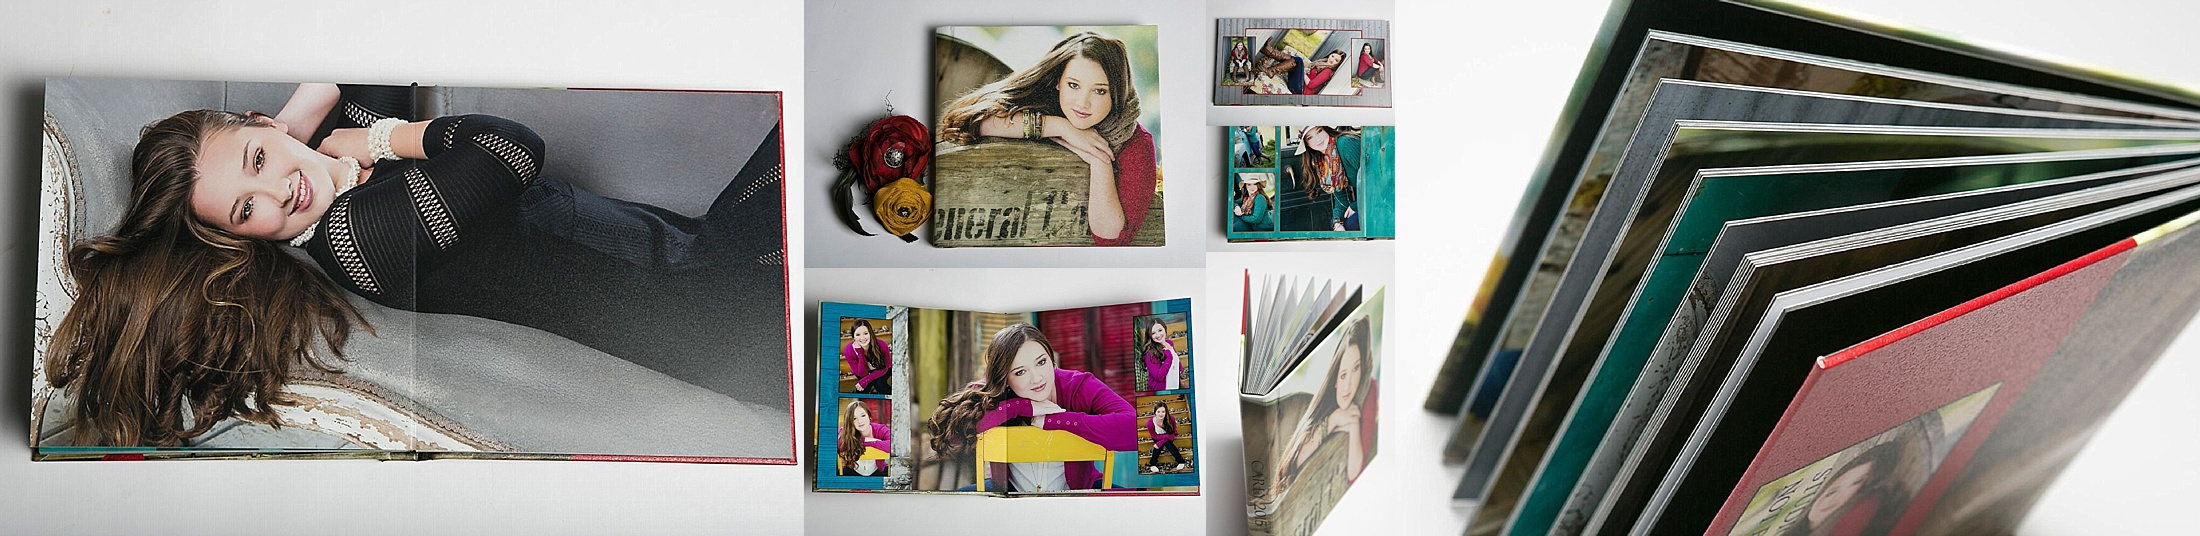 SENIOR PICTURE portrait products indianapolis Indiana MAC marci and christy coffeetable books